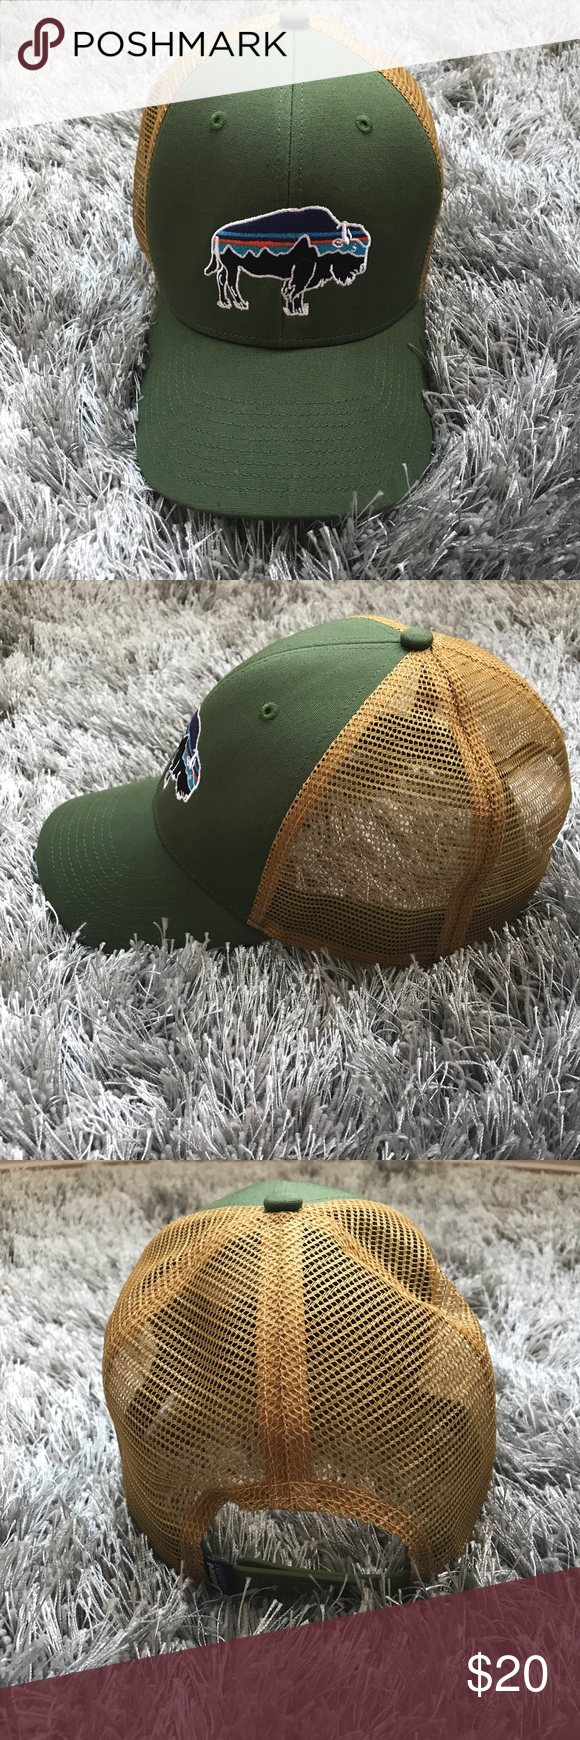 NWOT Patagonia Fitz Roy Bison trucker hat NWOT Patagonia Fitz Roy Bison  trucker hat. Color is buffalo green. Durable cotton hat with m… 7cf32391148e